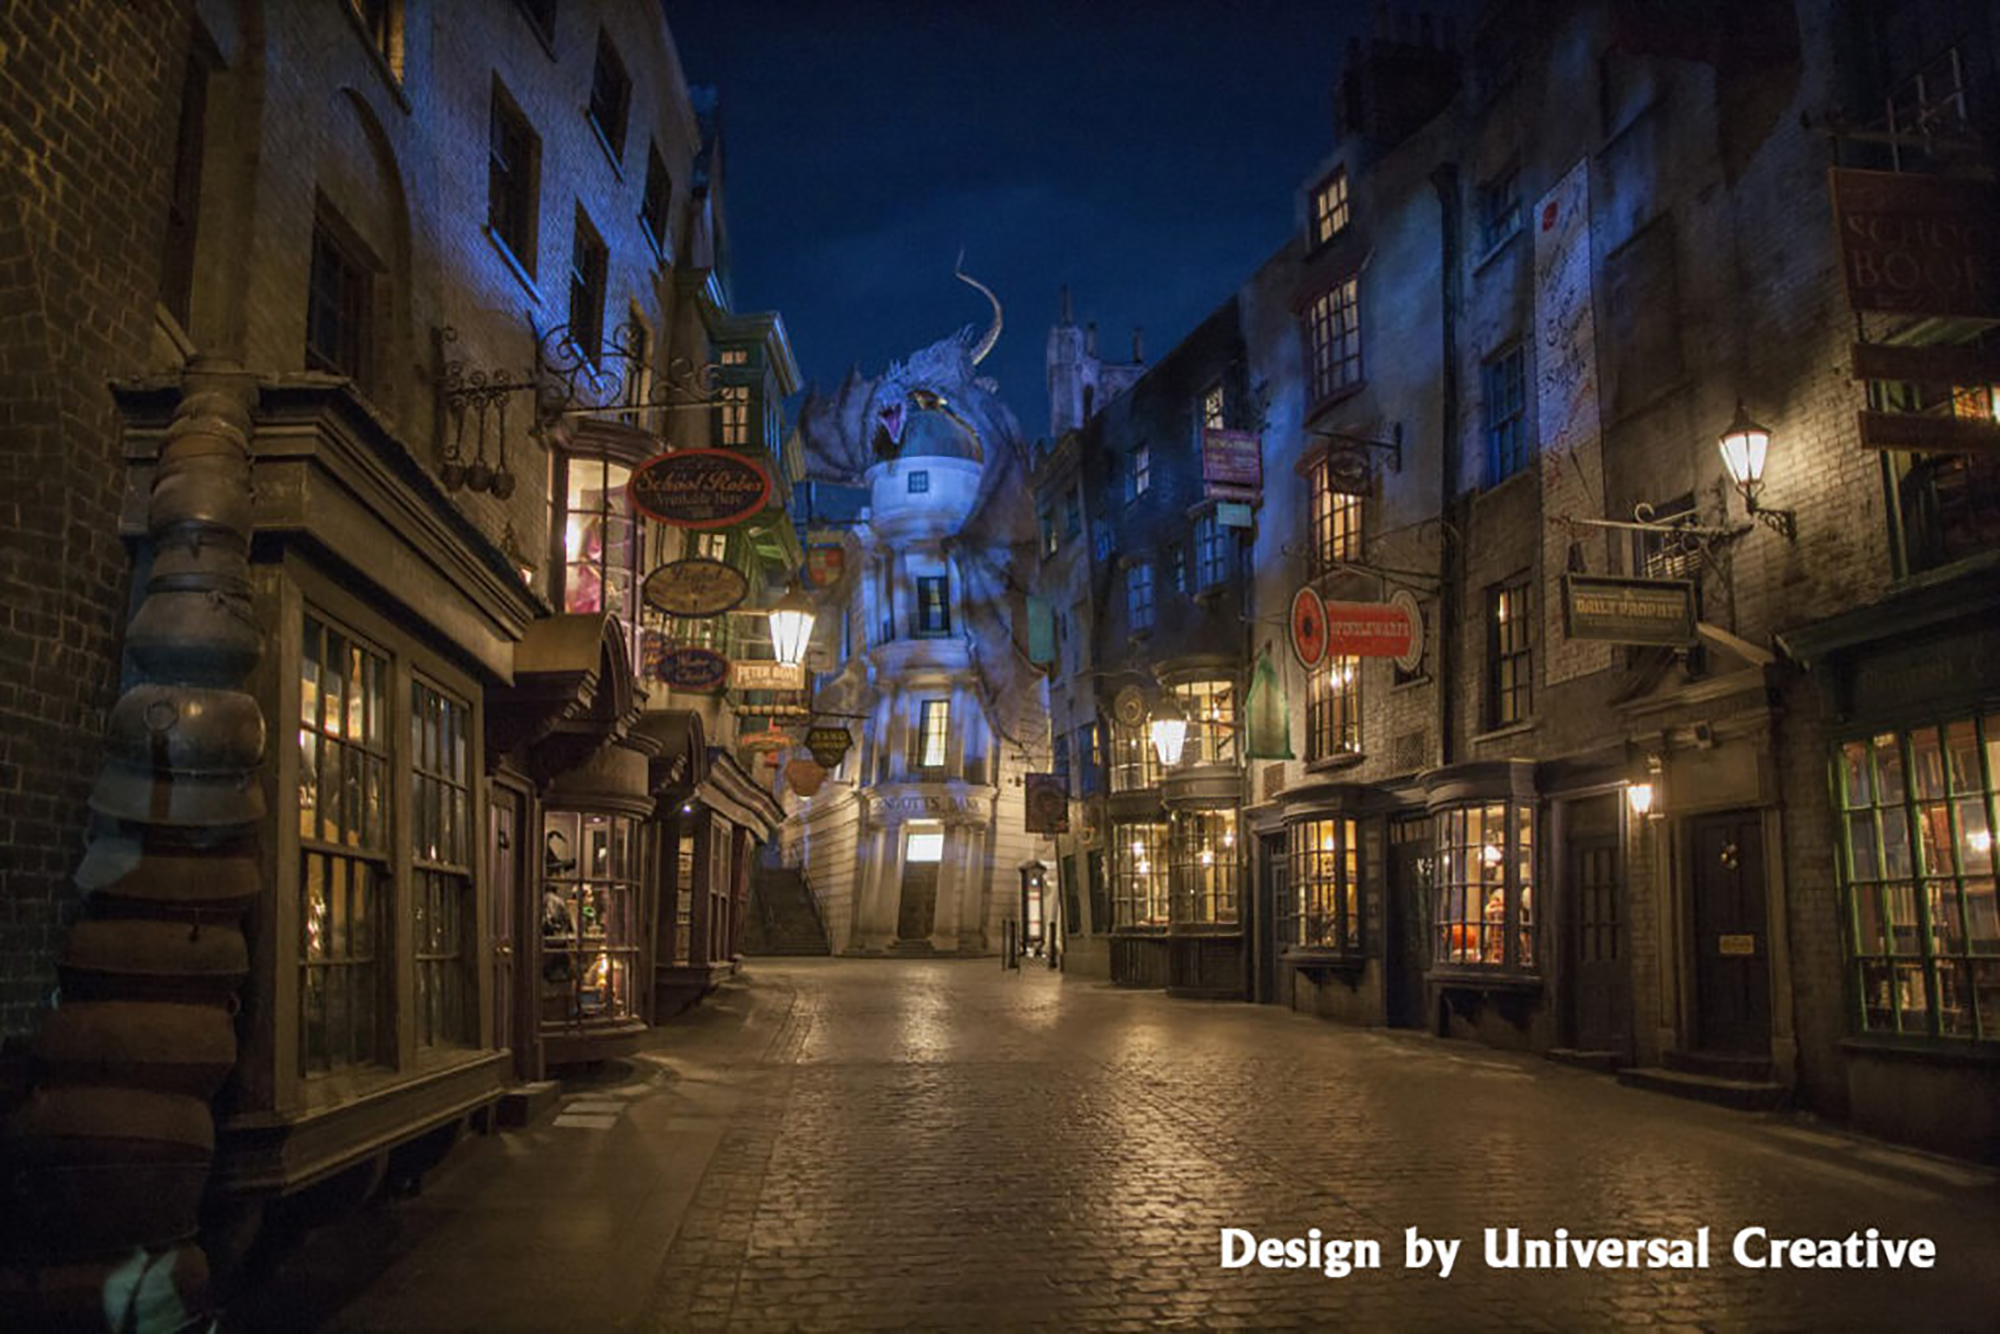 Picture of Diagon Alley at Universal Studios